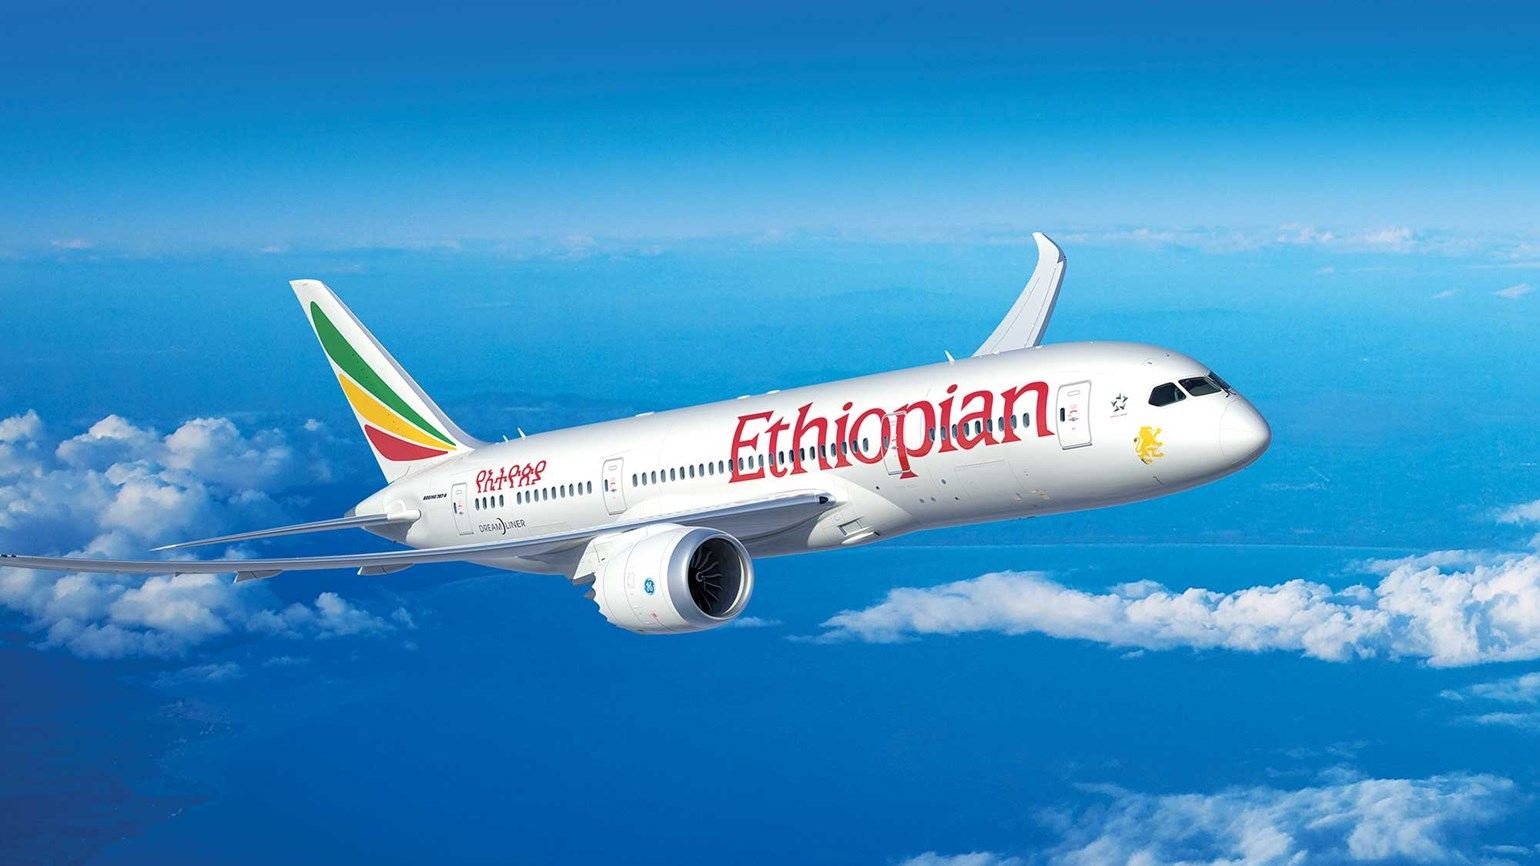 The crashed Boeing 737 Max likely had its nose automatically forced down, Ethiopian Airlines have said